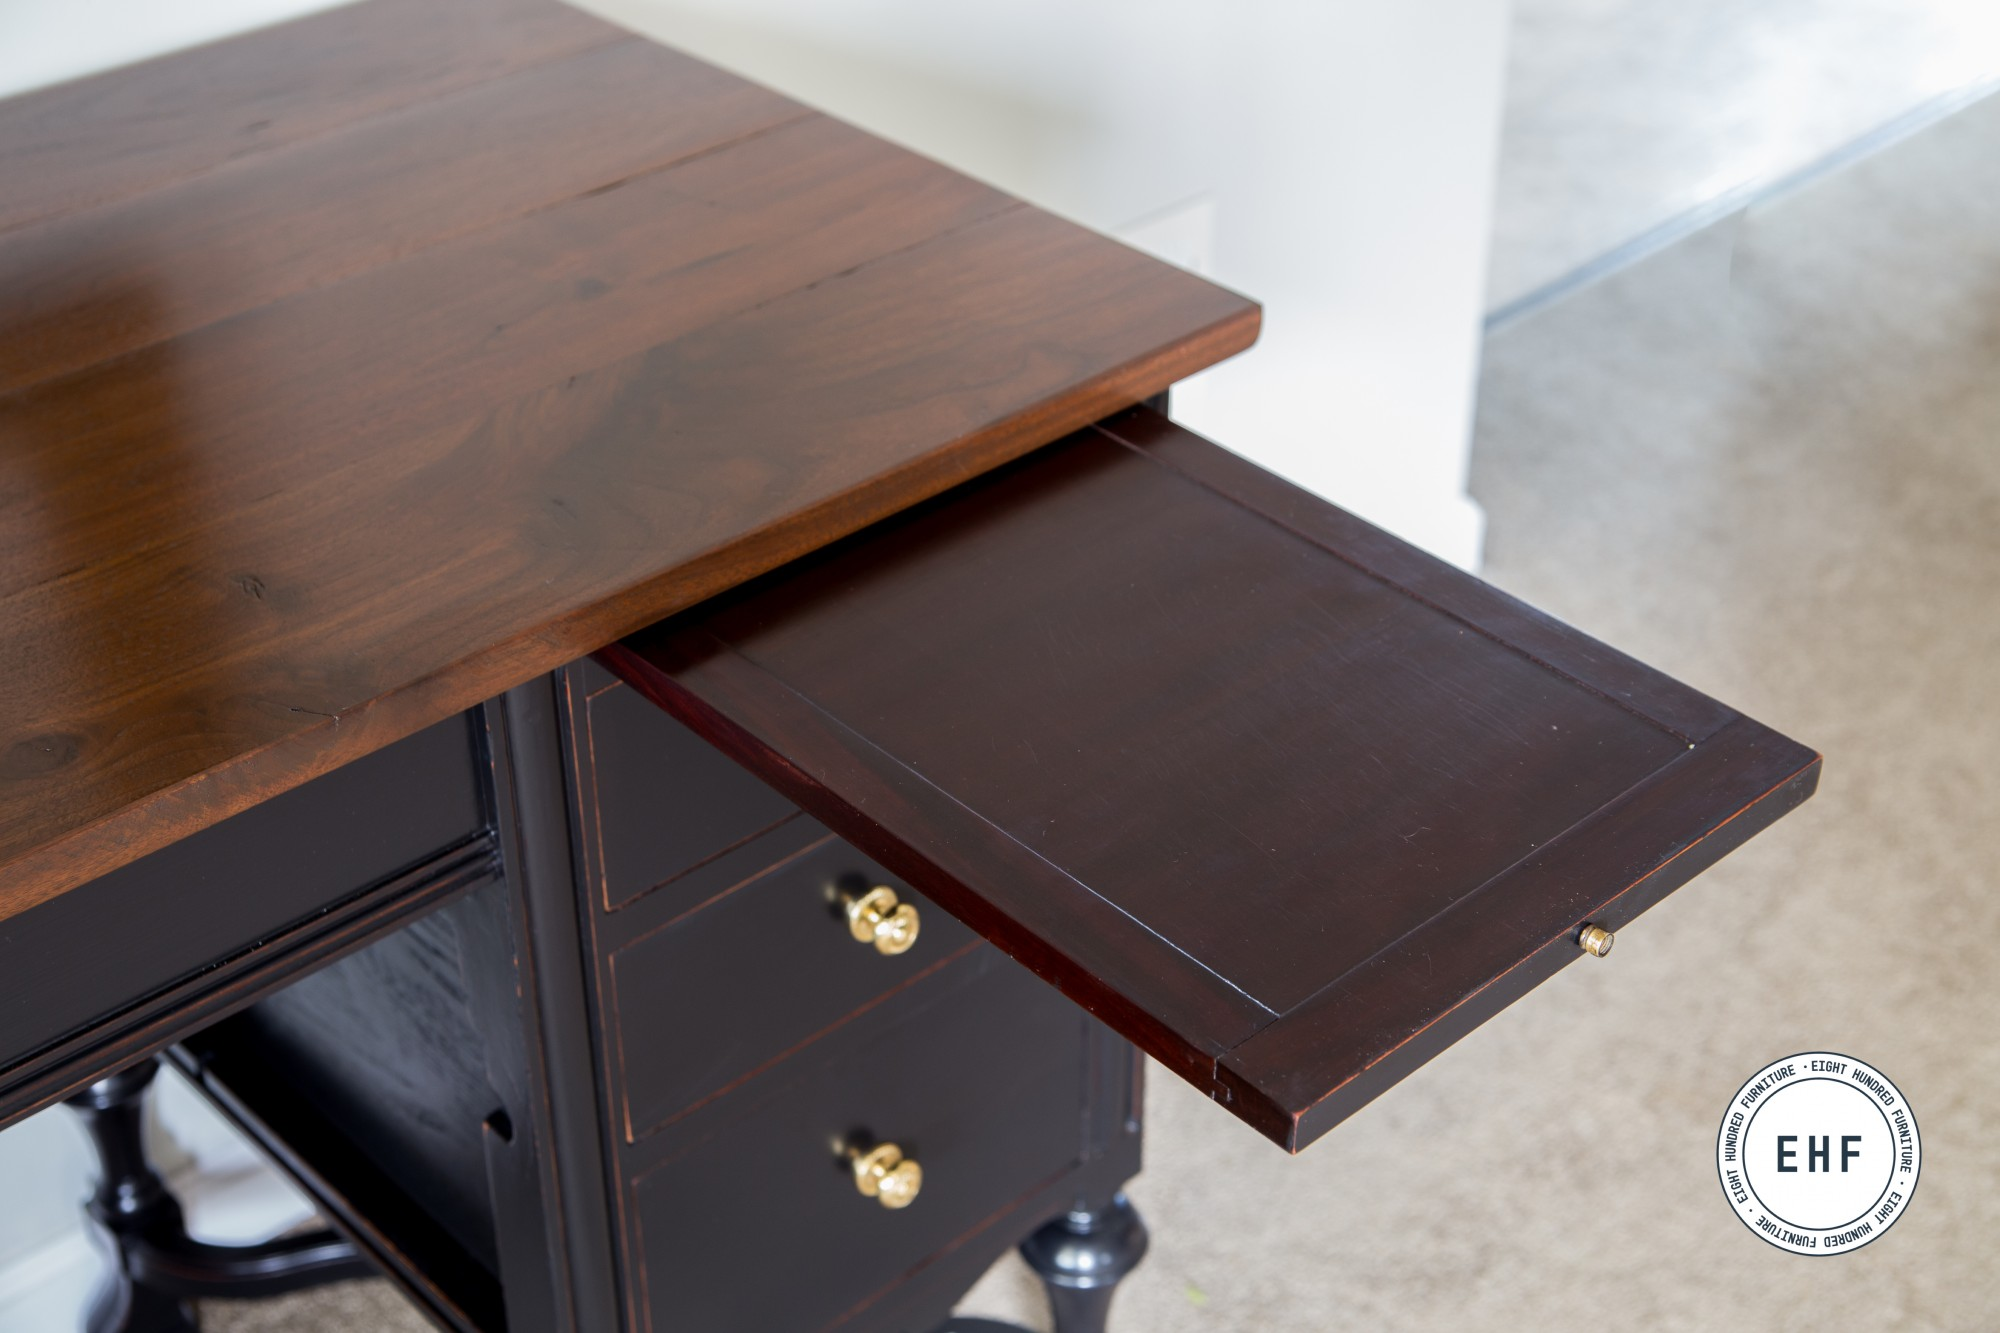 Mahogany pull out writing surface on typewriter desk